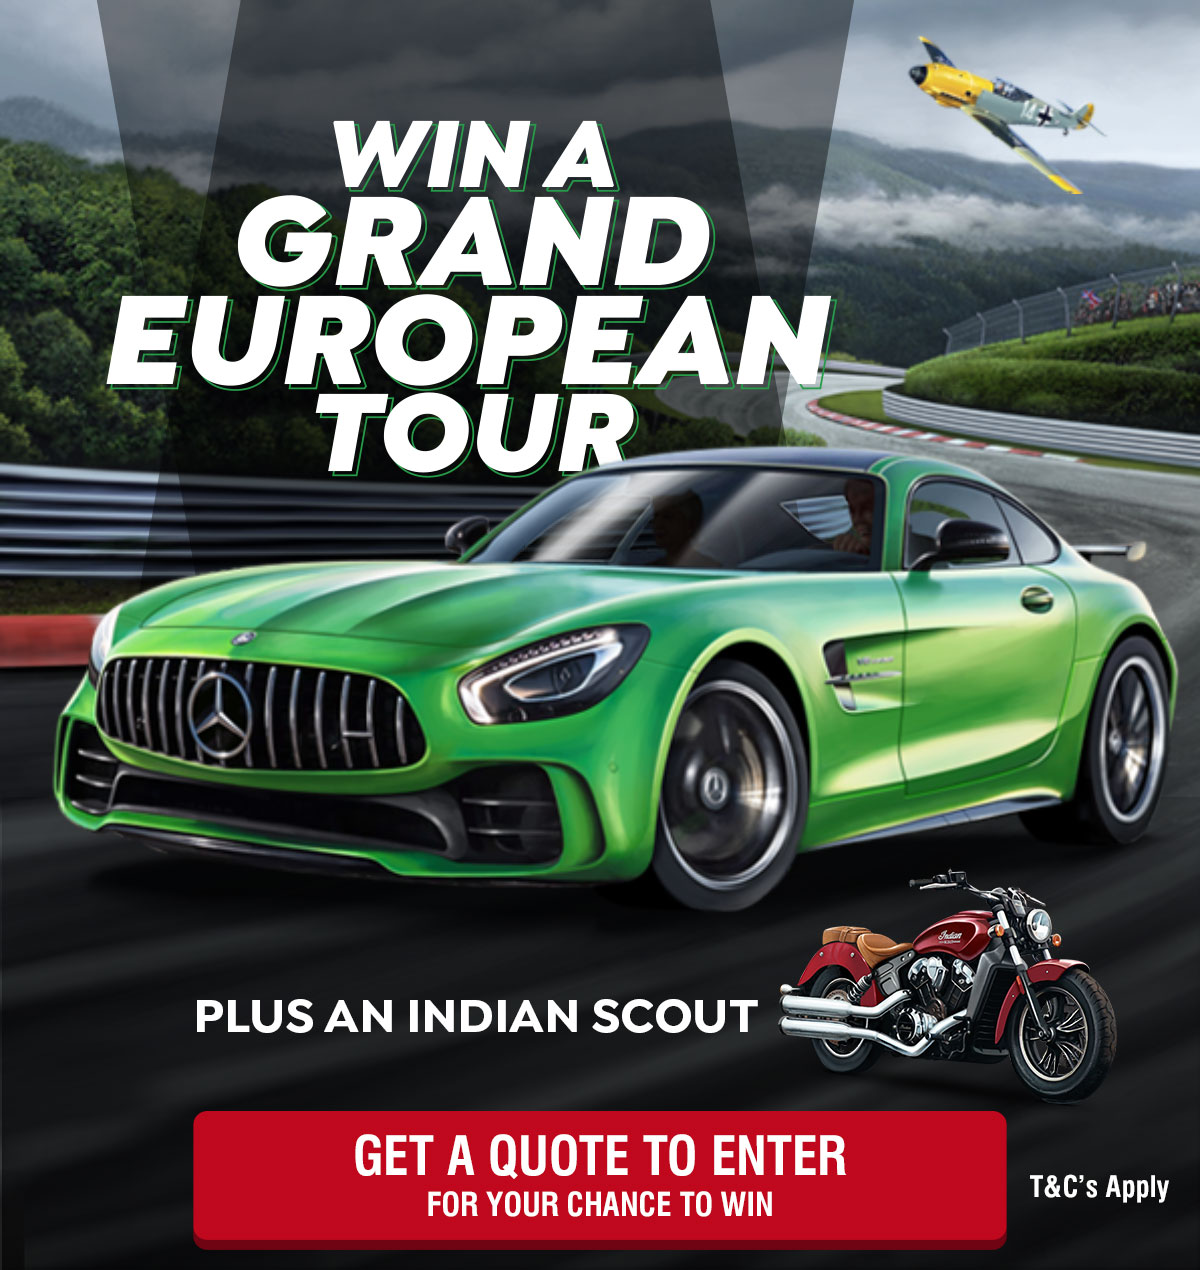 Win a Grand European Tour Plus an Indian Scout Motorcycle